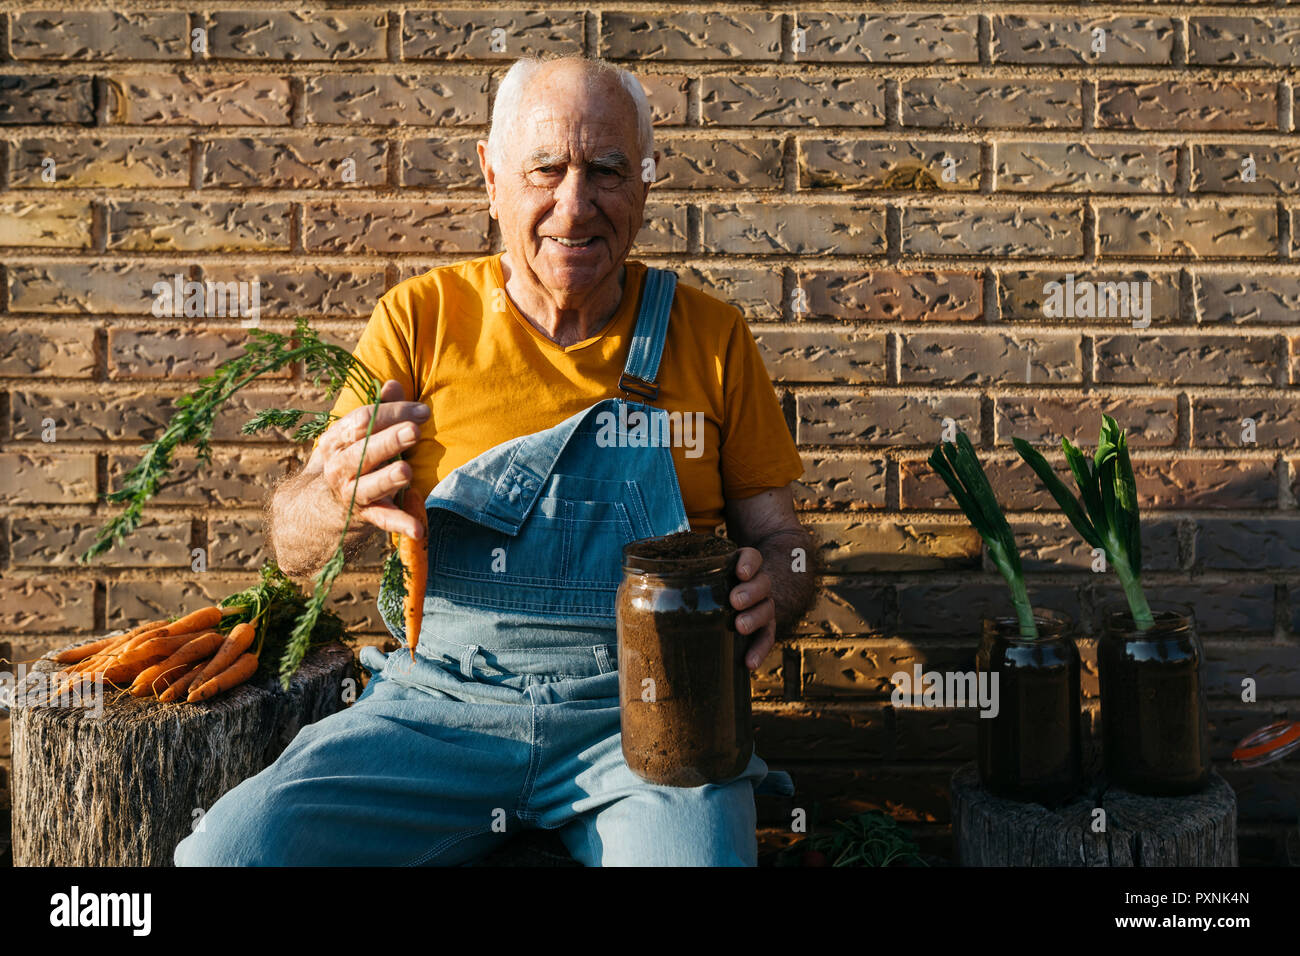 Smiling senior man with glass jars of soil and fresh carrots looking at camera - Stock Image